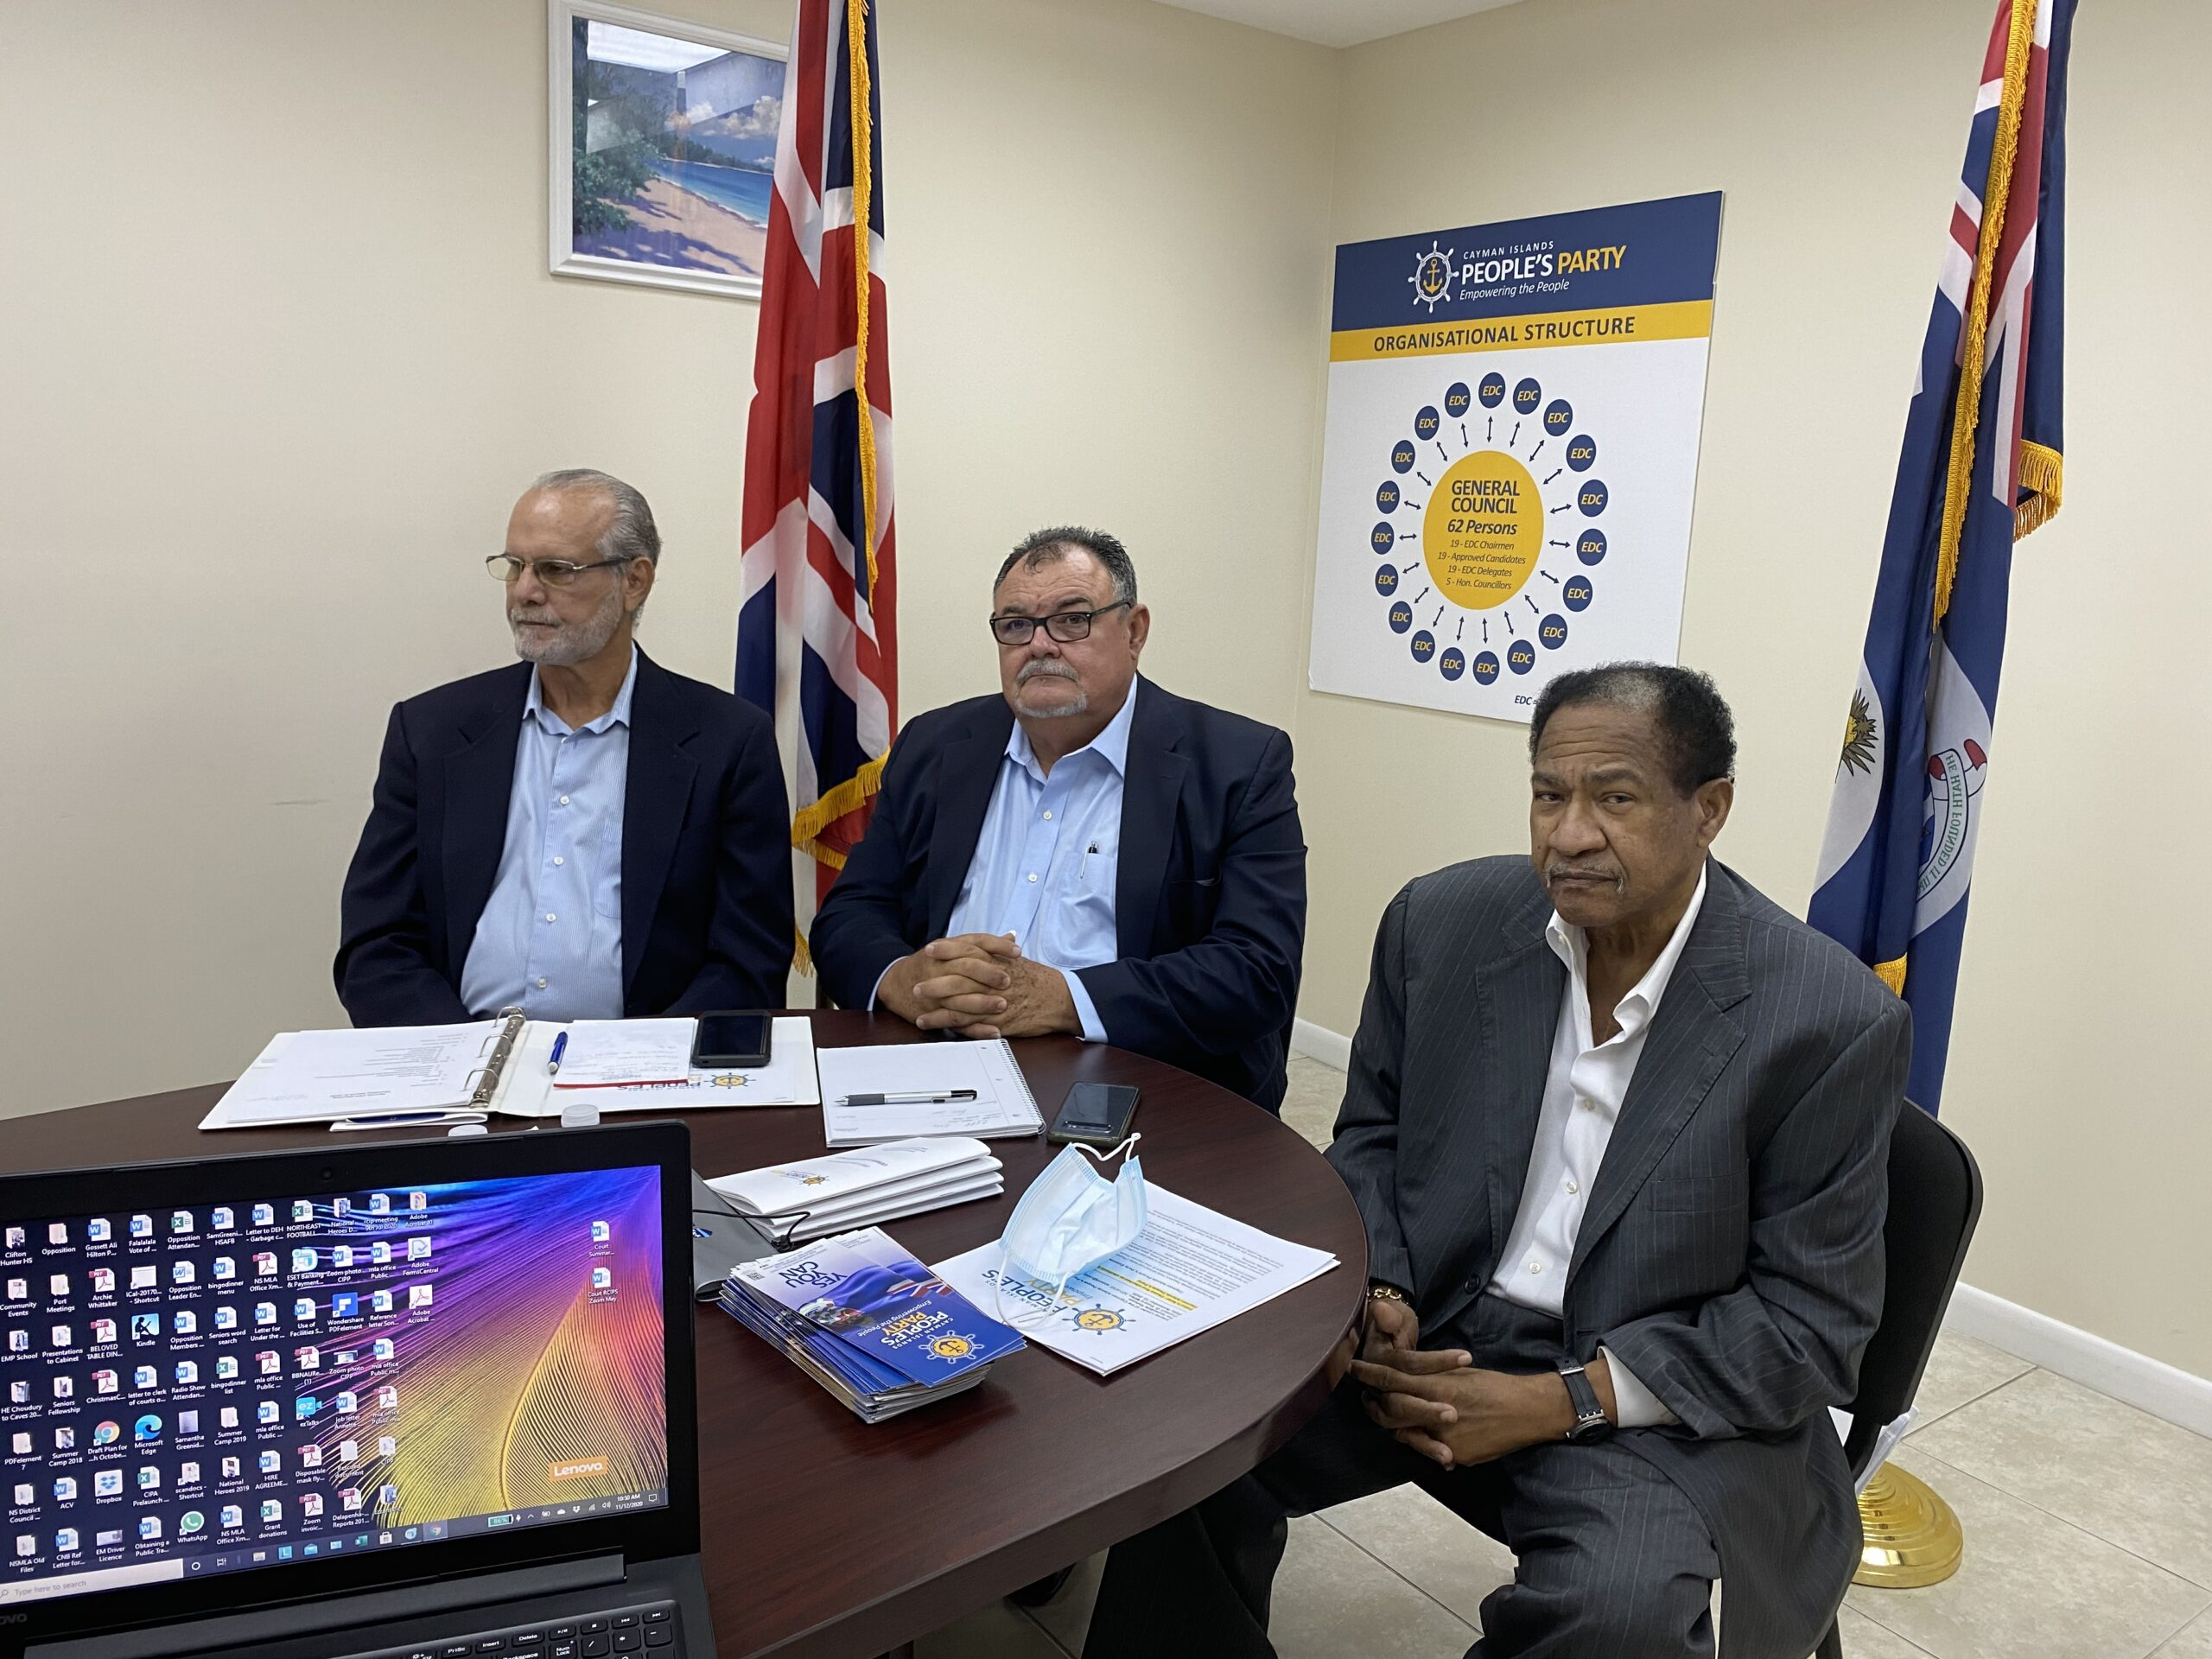 Cayman Islands People's Party